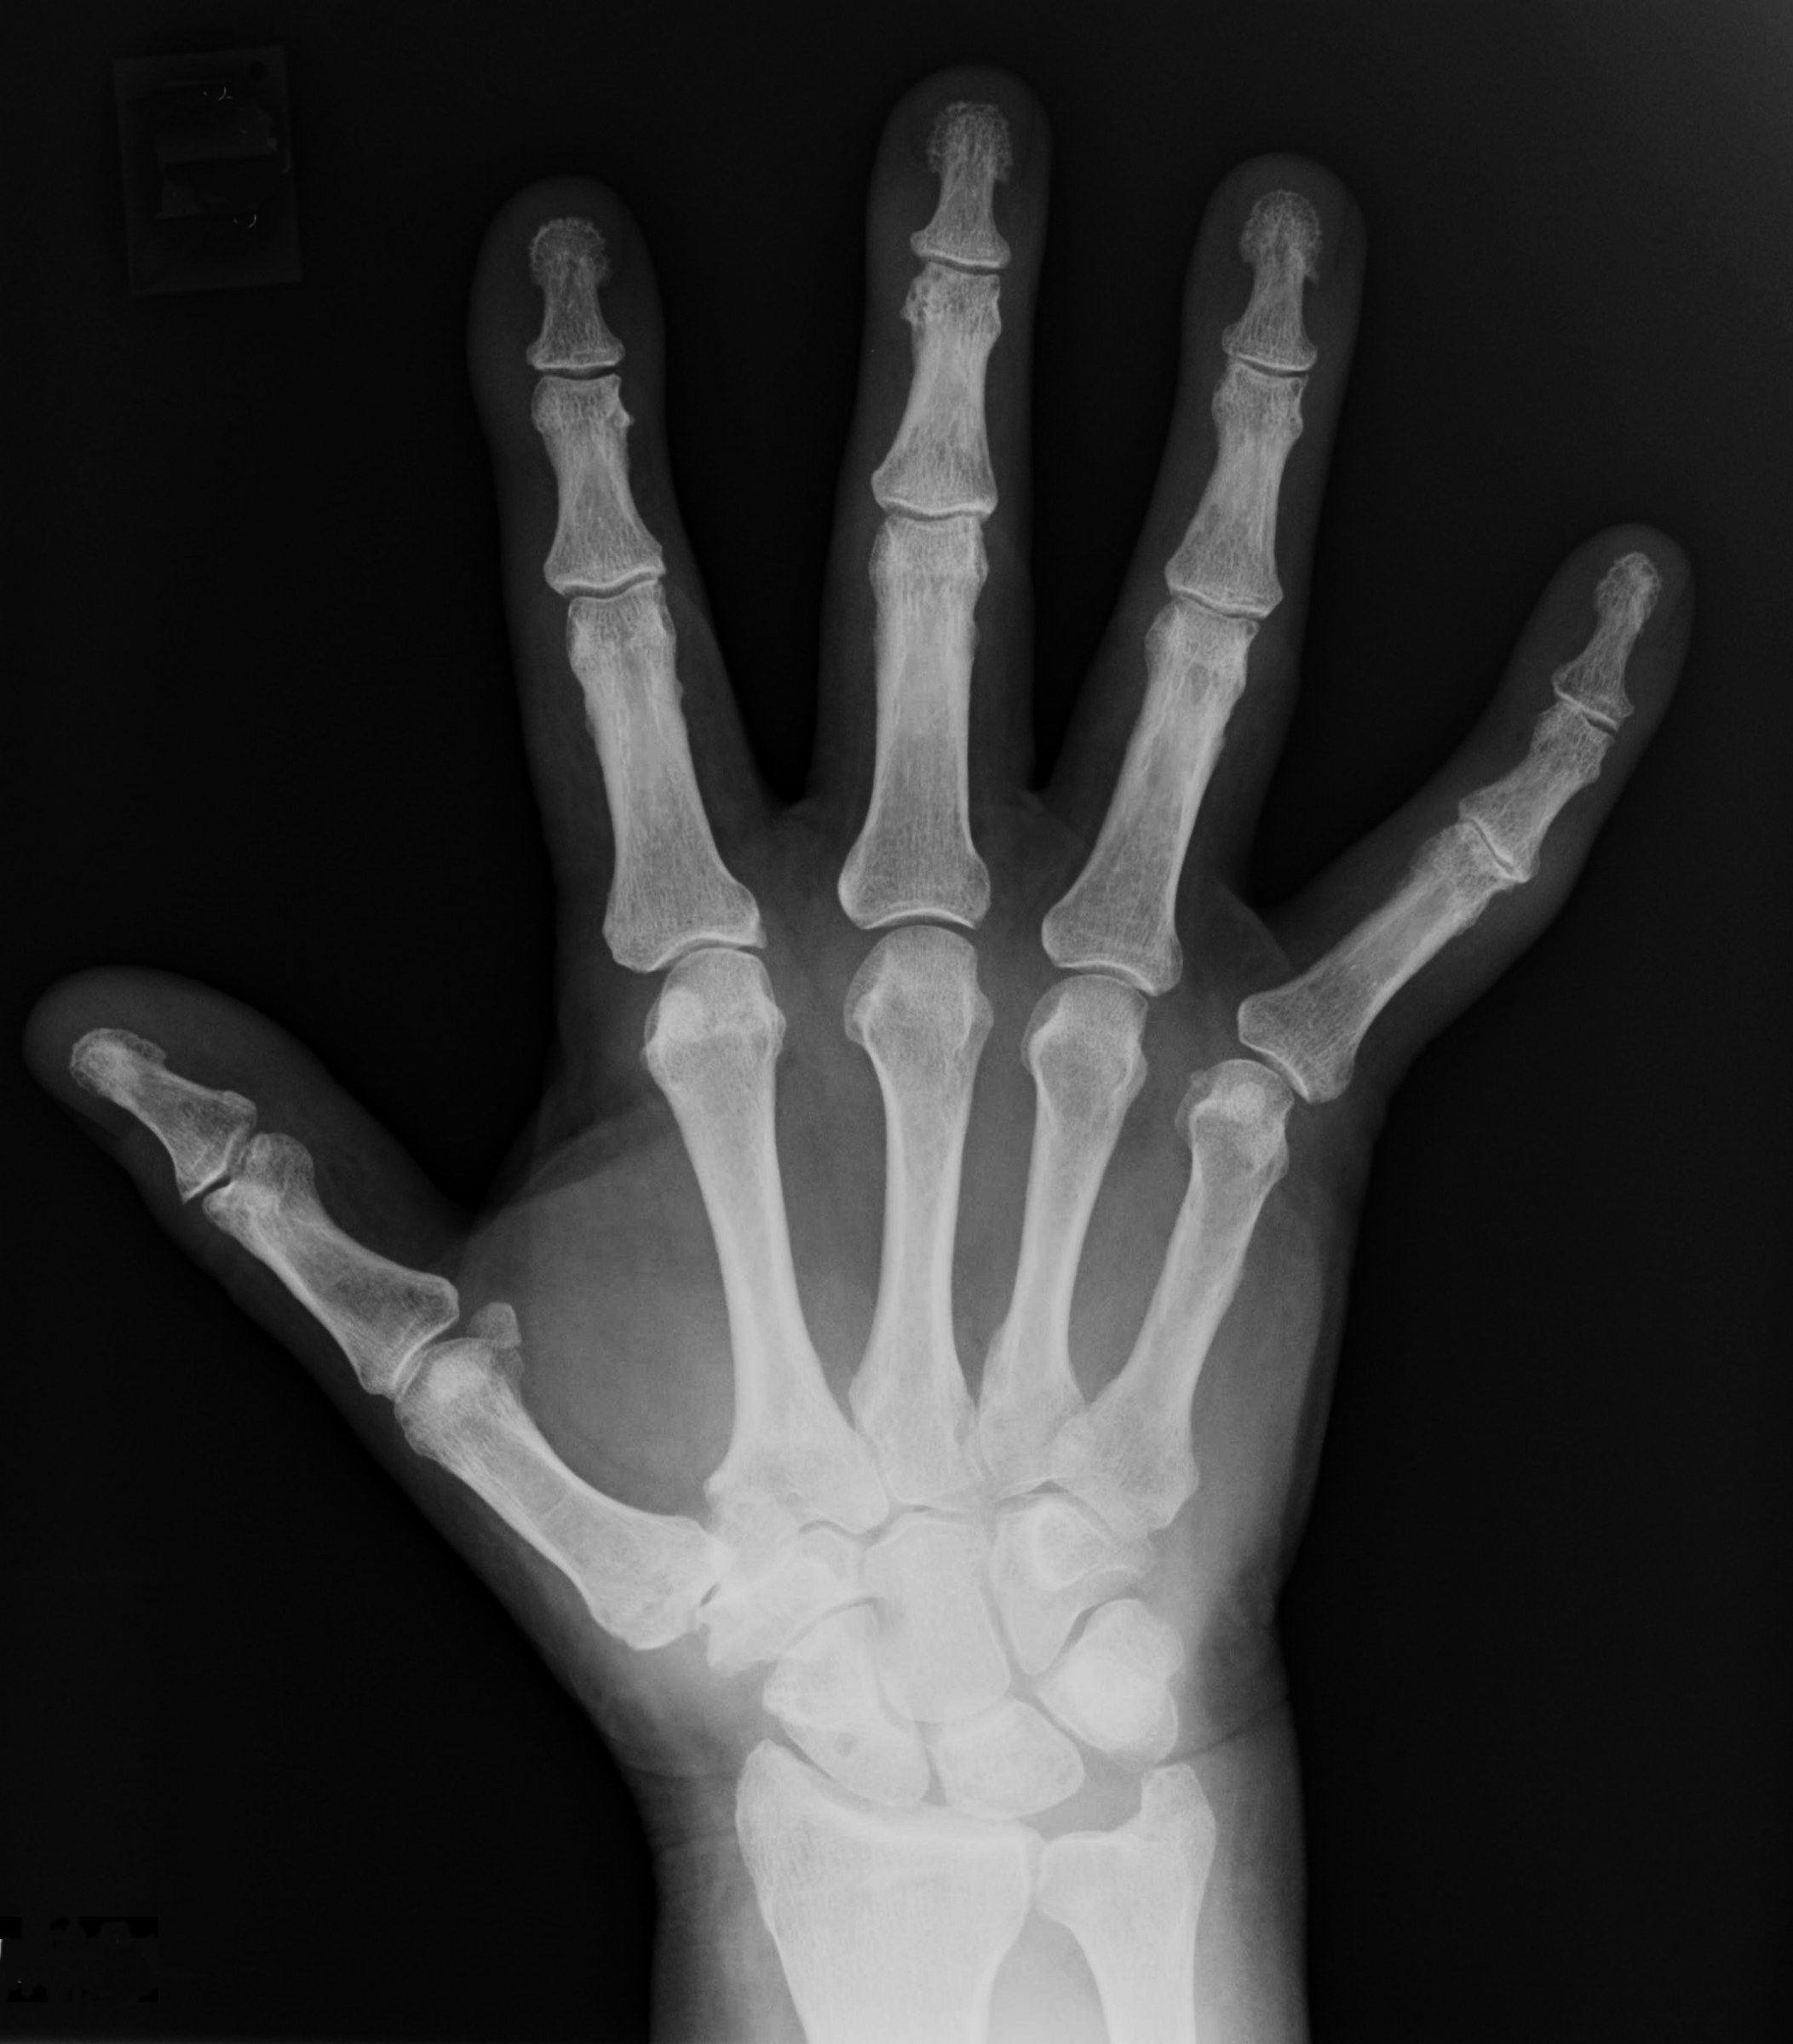 Free Photo Xray Human X Ray X Free Download Jooinn Here you can explore hq hand xray transparent illustrations, icons and clipart with filter setting like size, type, color etc. free photo xray human x ray x